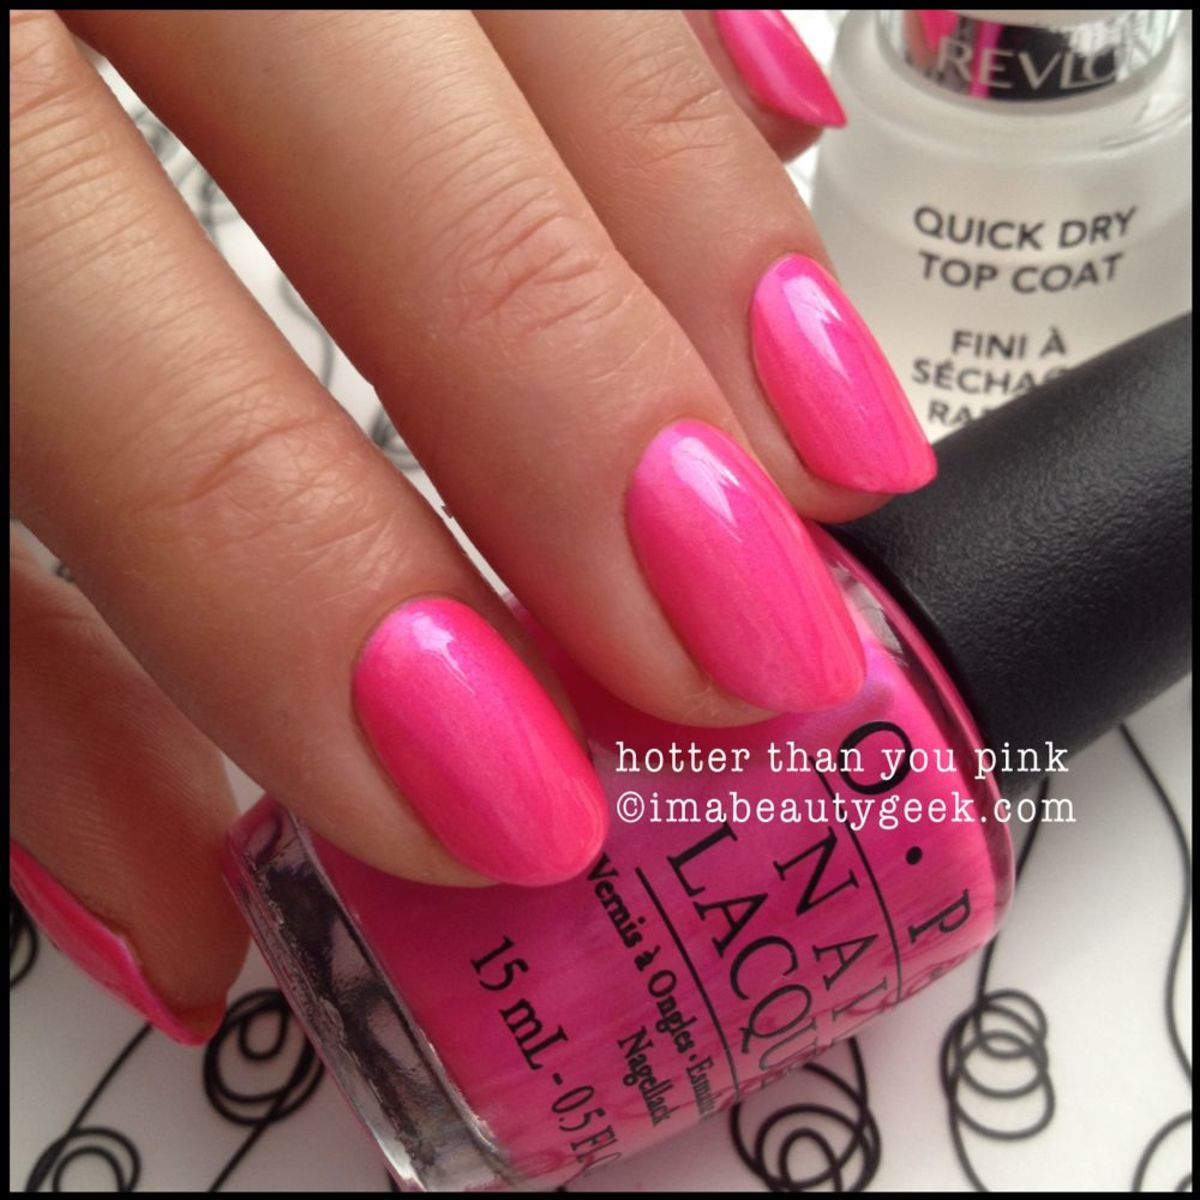 OPI Neon Hotter Than You Pink OPI Neon 2014